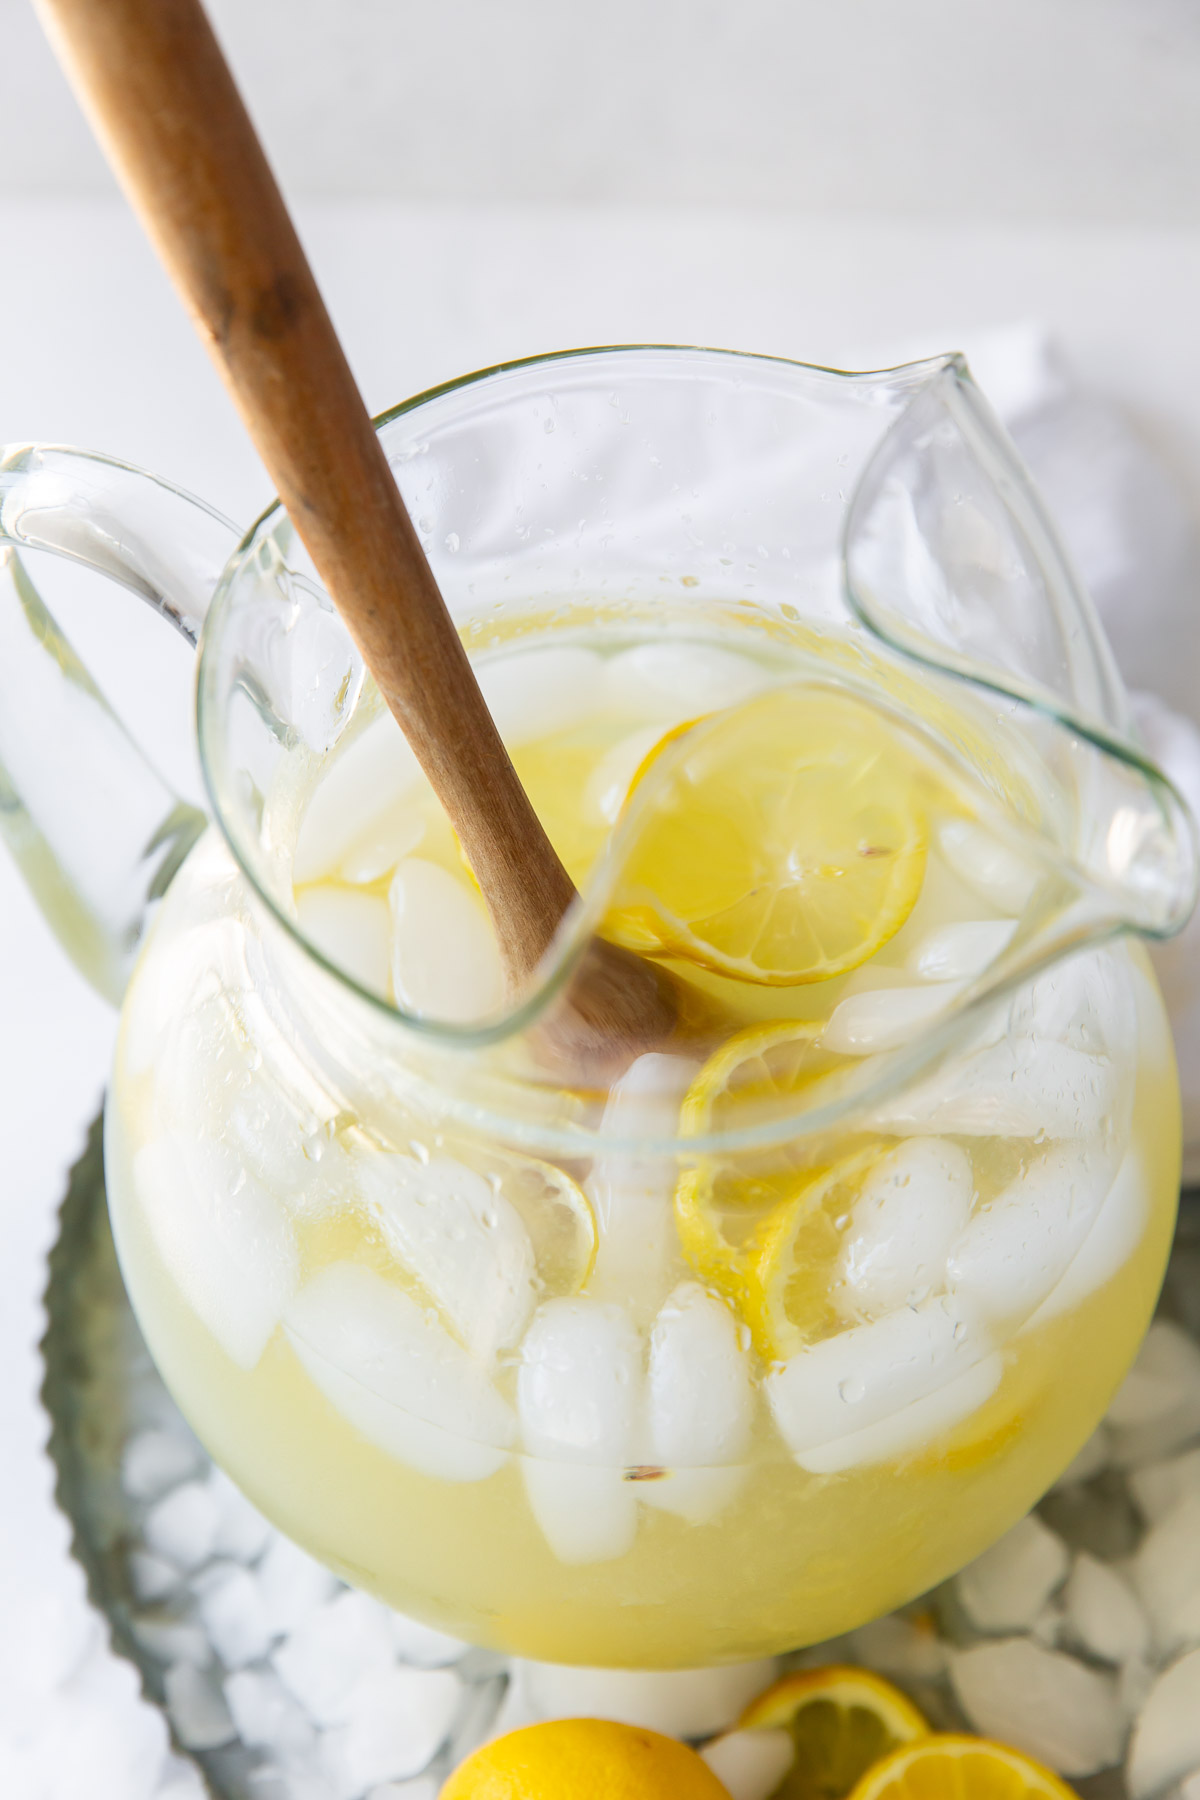 homemade lemonade in a pitcher with ice, lemon slices and a wooden spoon